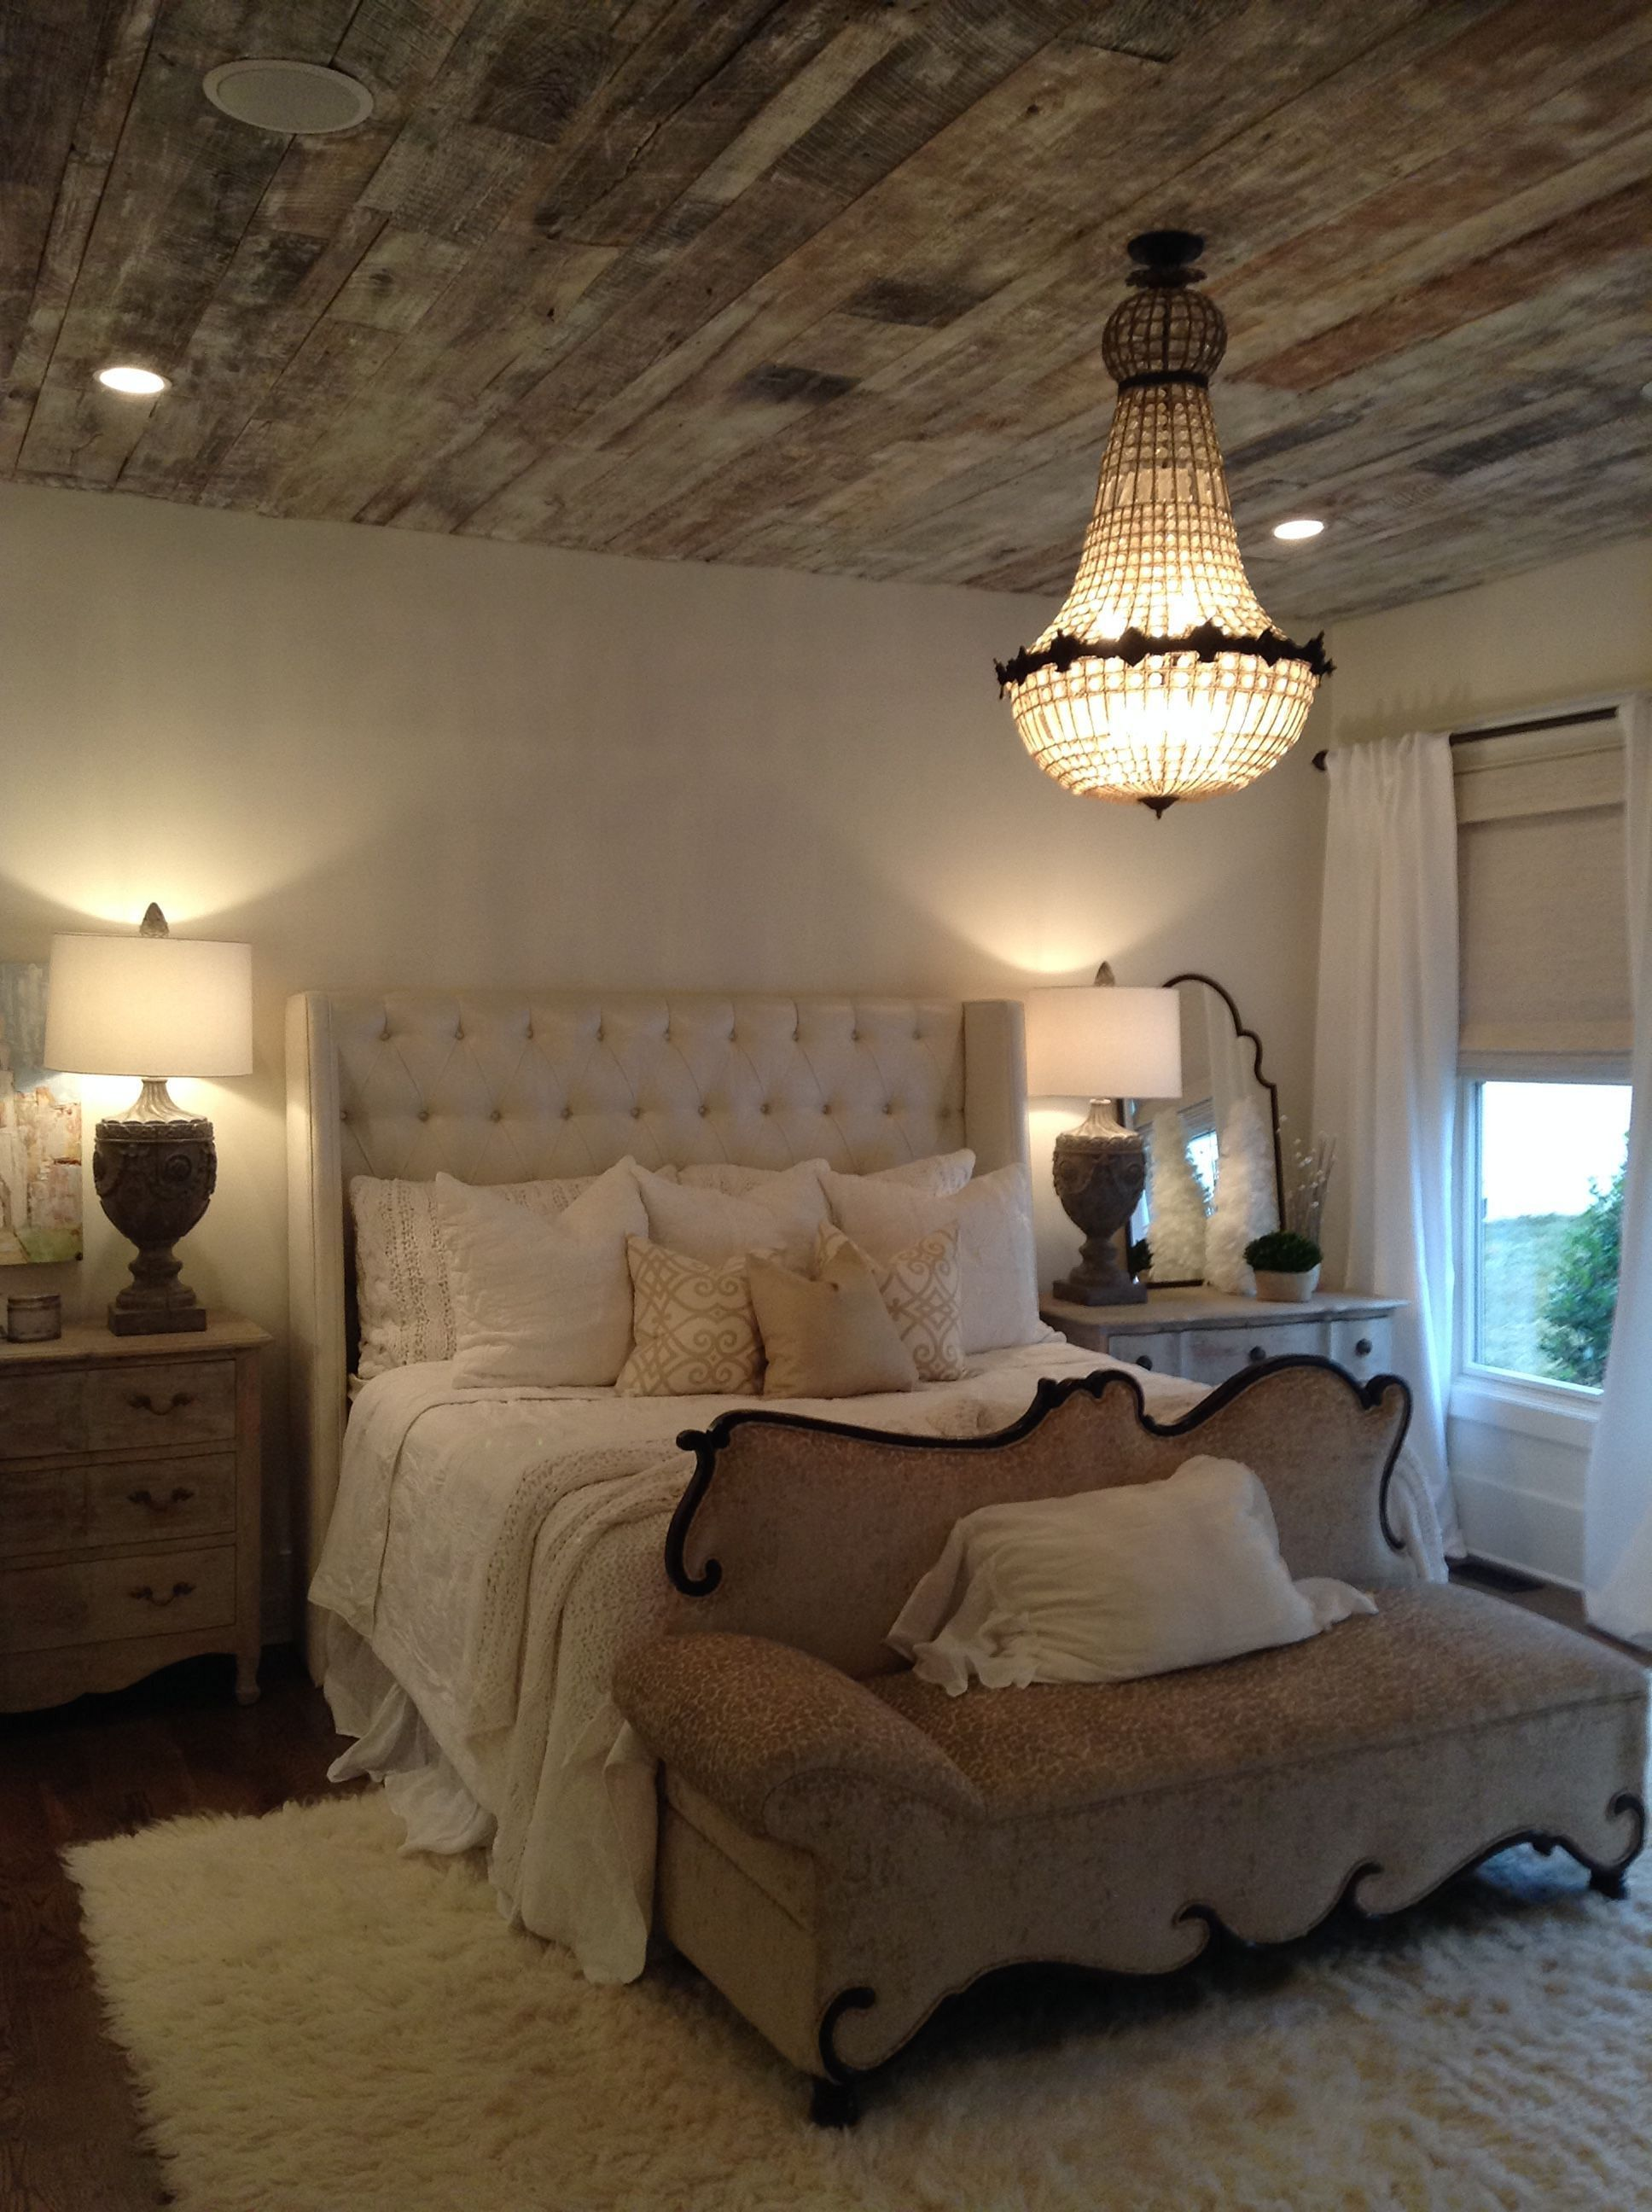 Marvelous 20 Cozy Small Bedroom Design And